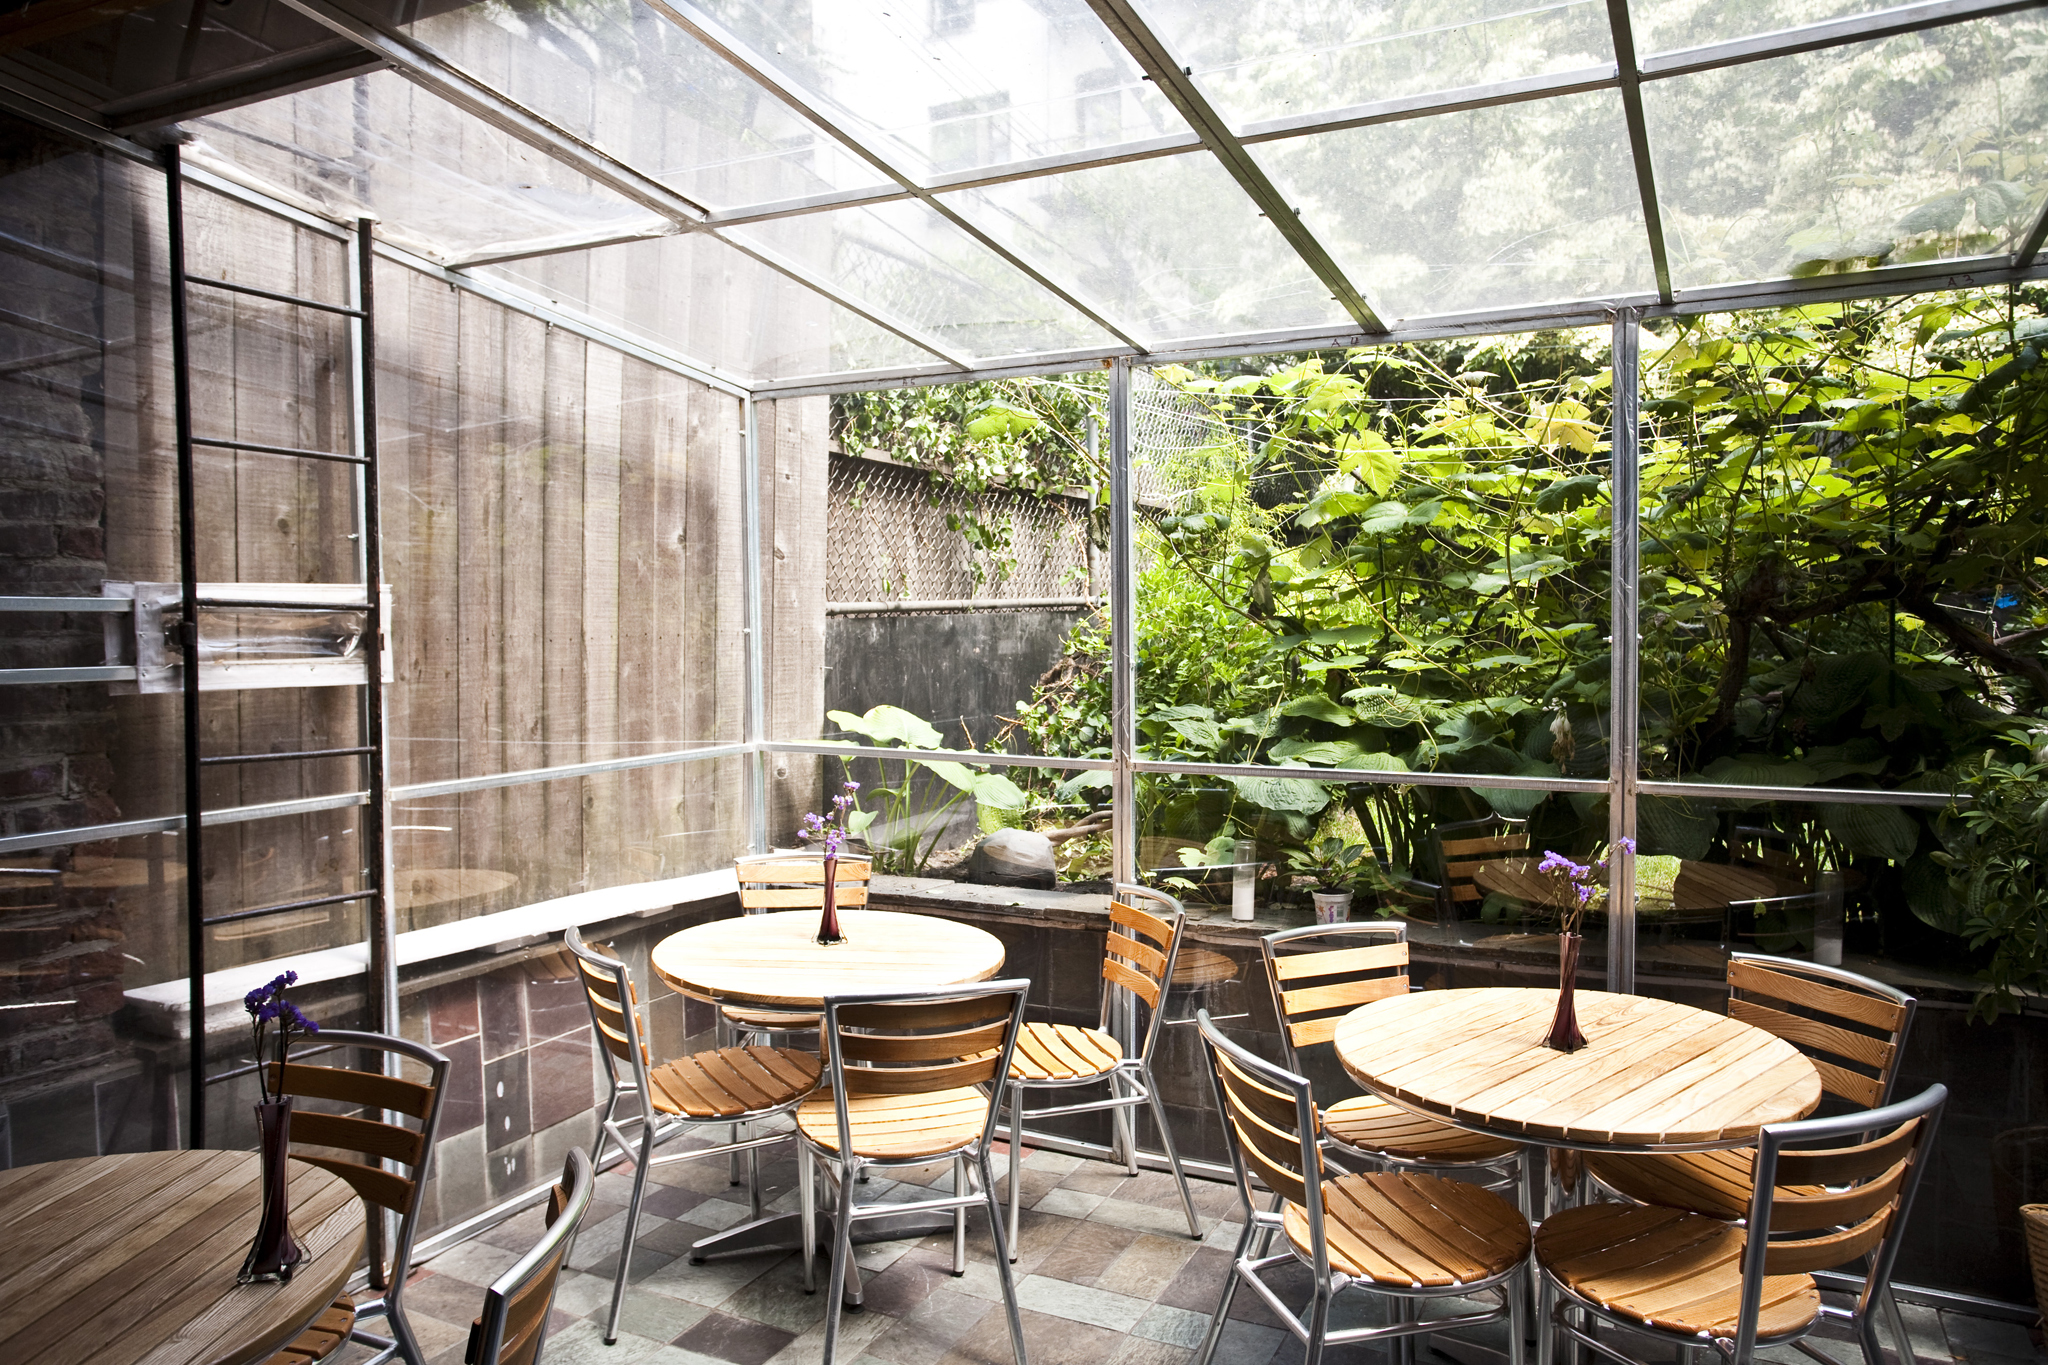 Restaurants for outdoor dining in NYC